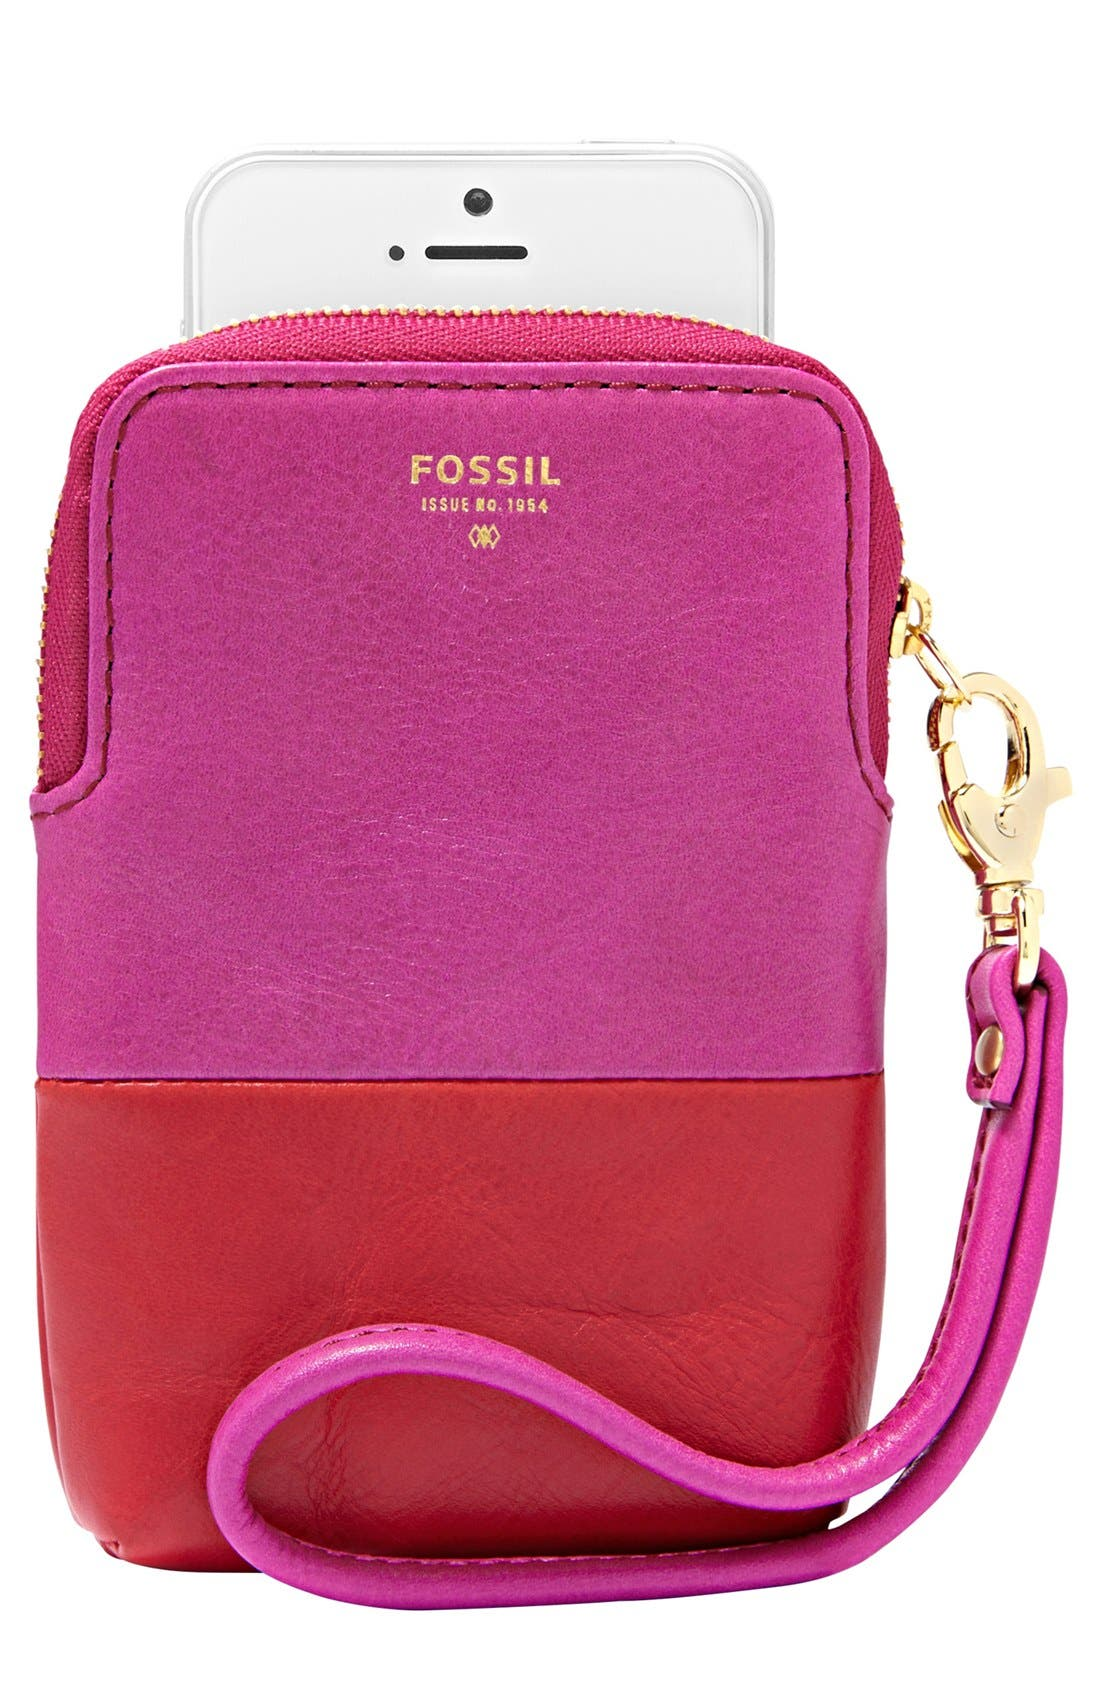 Alternate Image 1 Selected - Fossil Leather Phone Wristlet